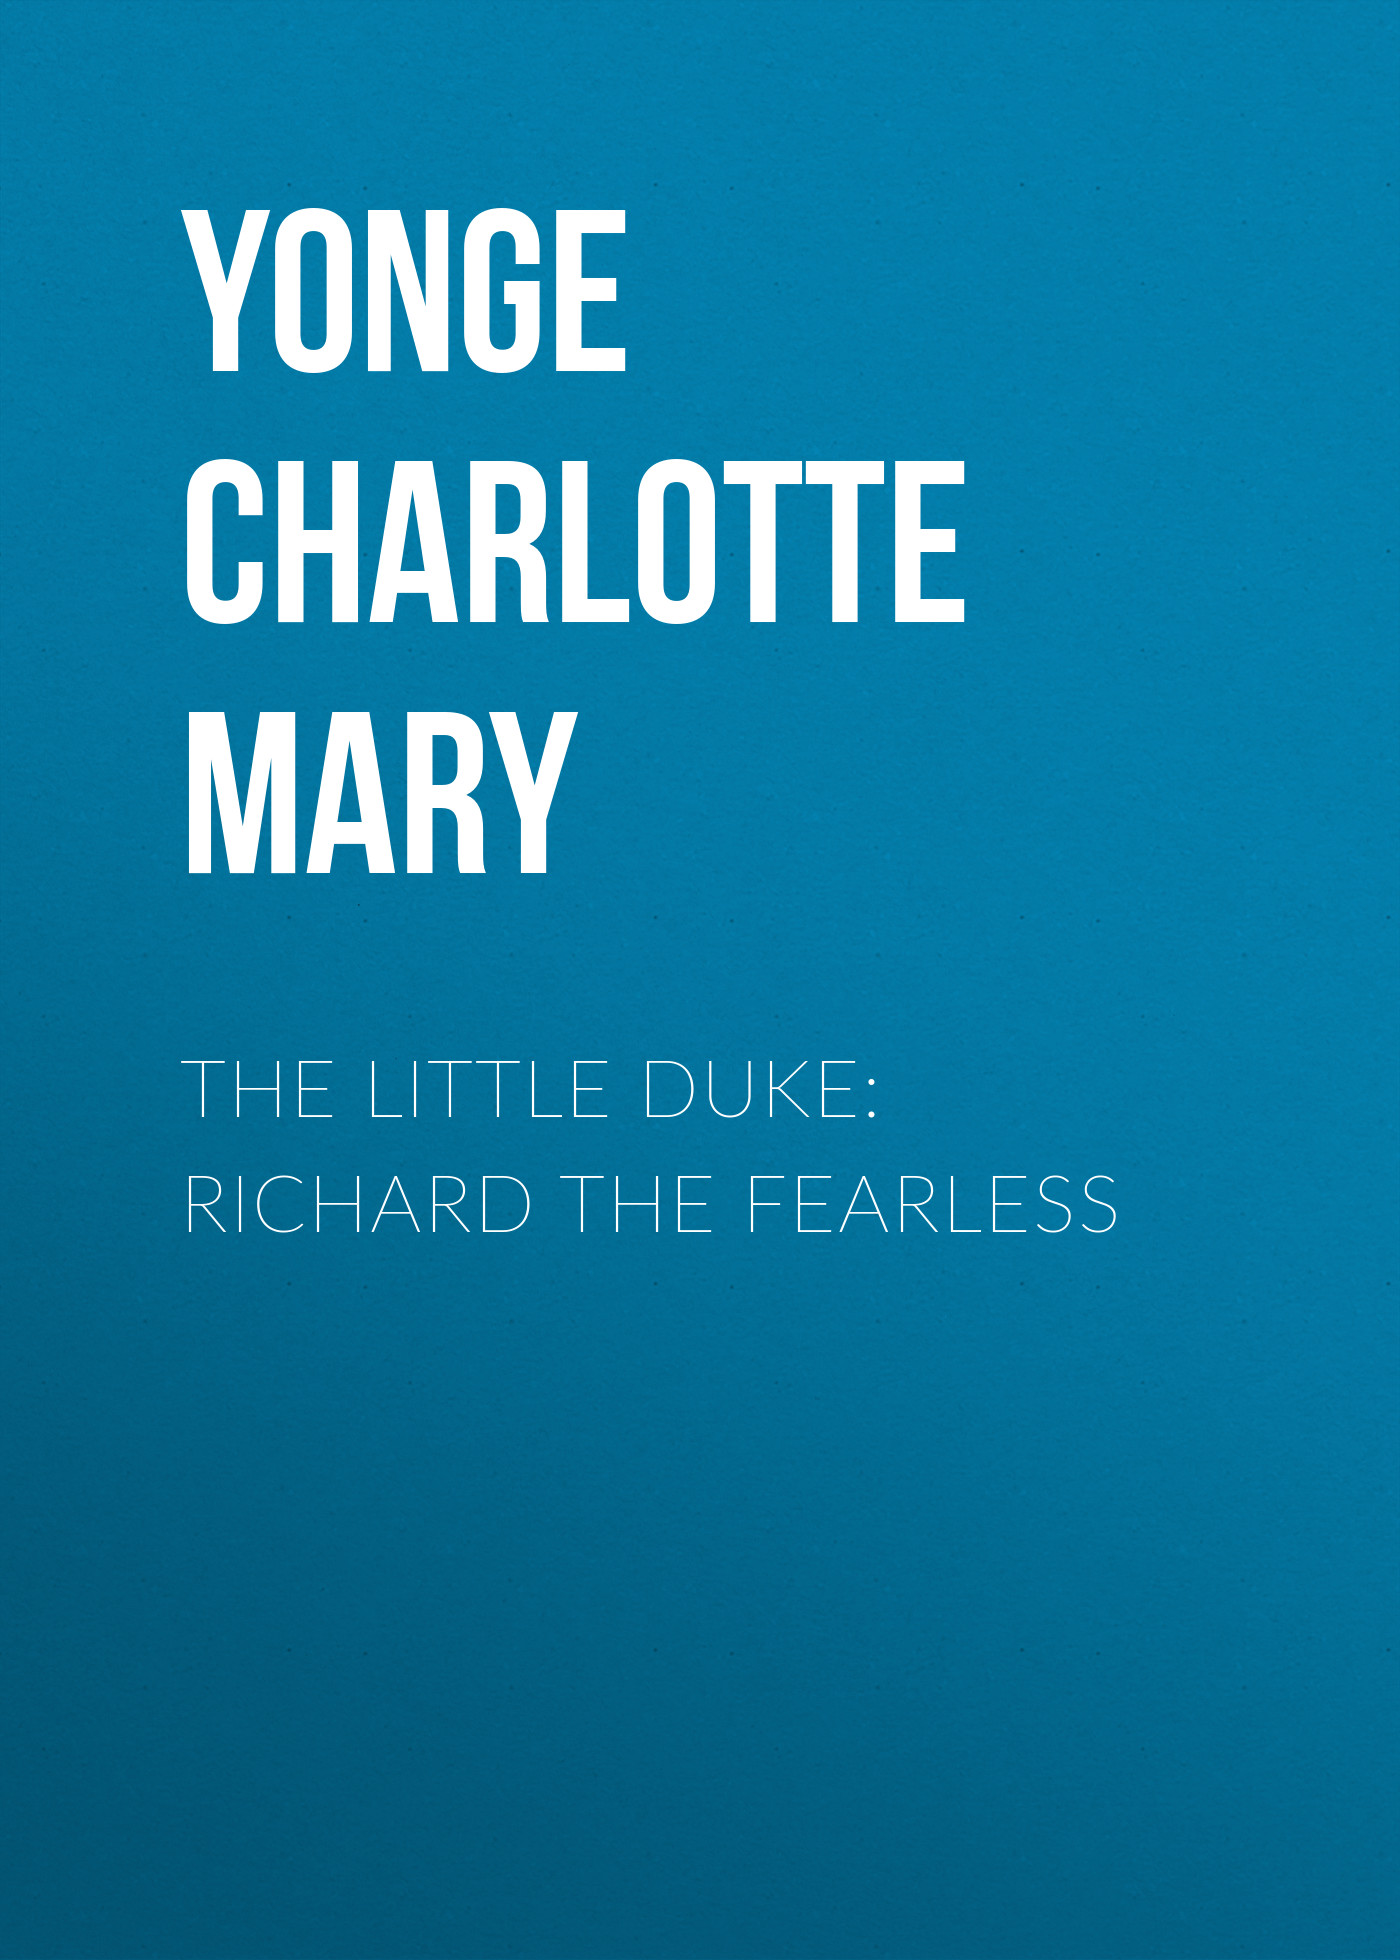 цена на Yonge Charlotte Mary The Little Duke: Richard the Fearless